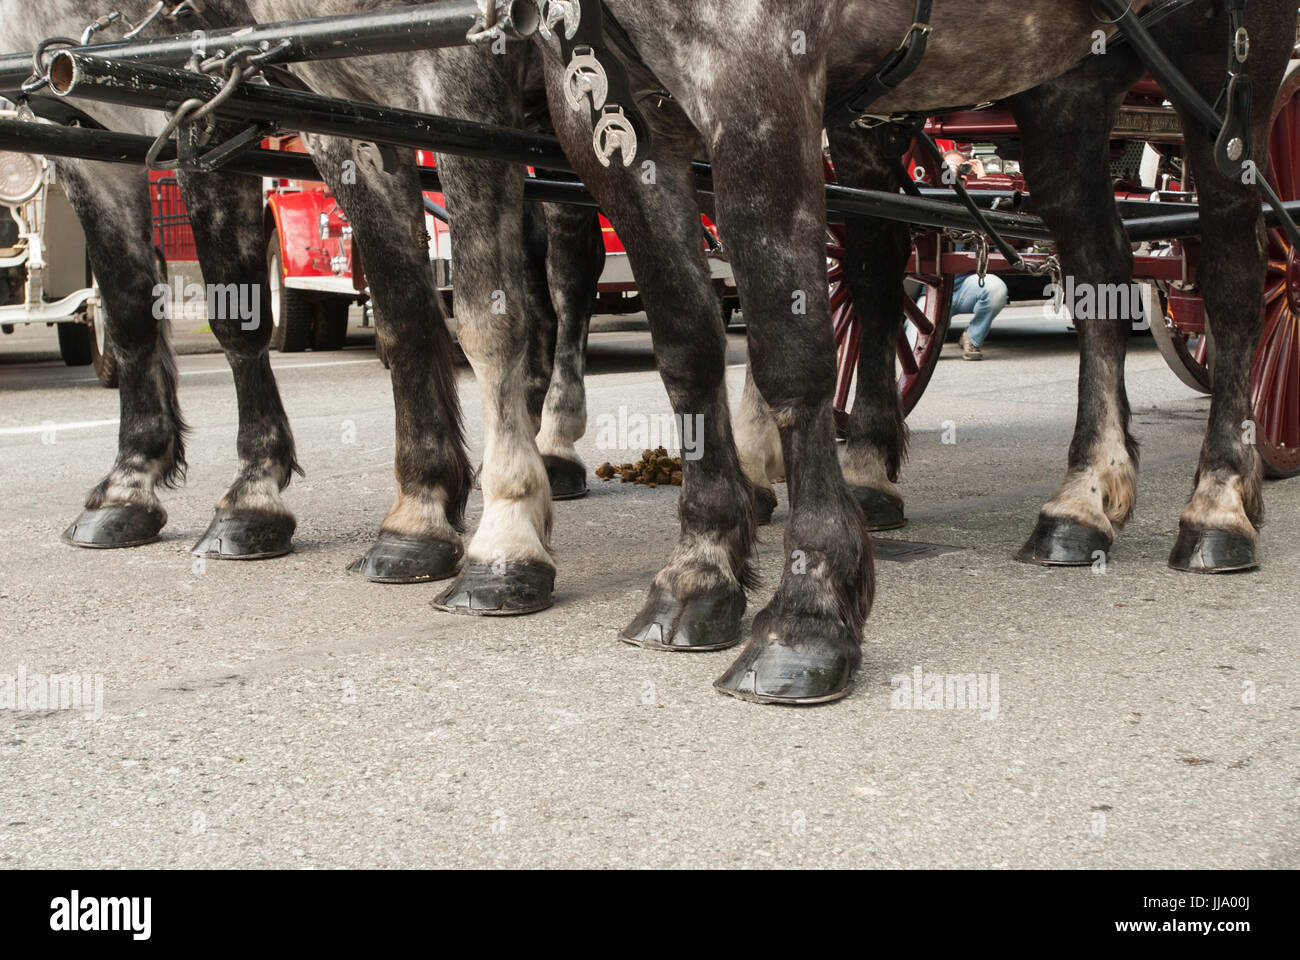 A team of horse's hoofs, stationary on a roadway. - Stock Image